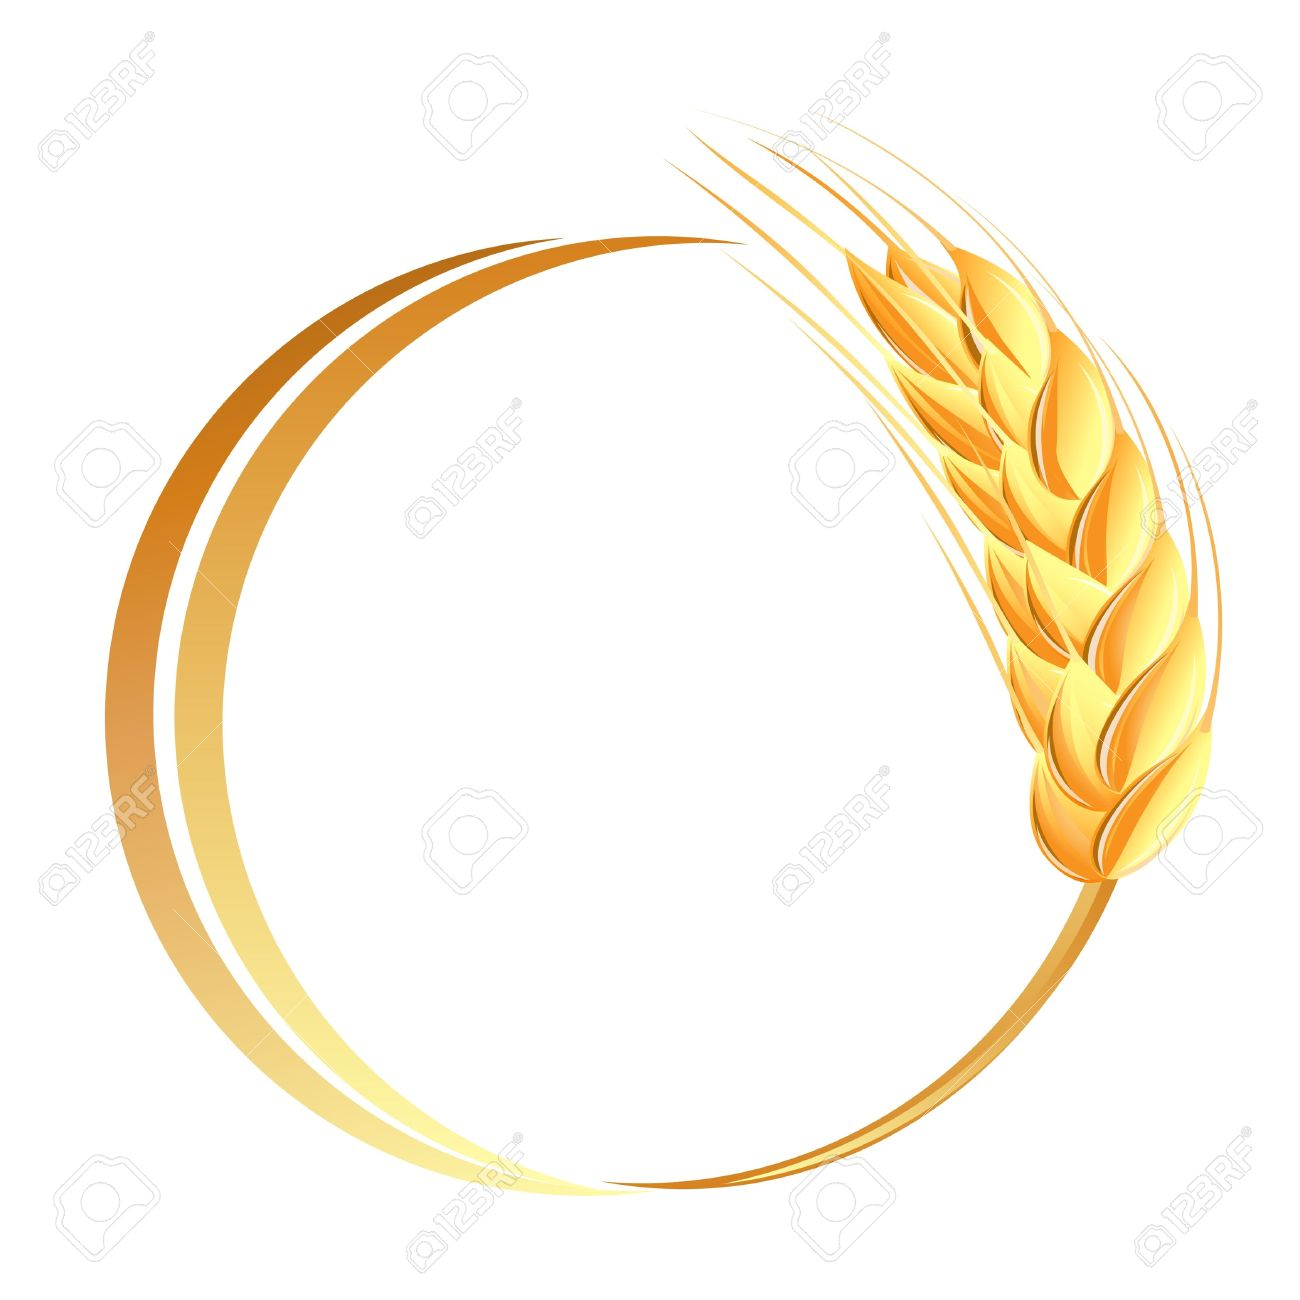 21,966 Wheat Grain Stock Vector Illustration And Royalty Free ...